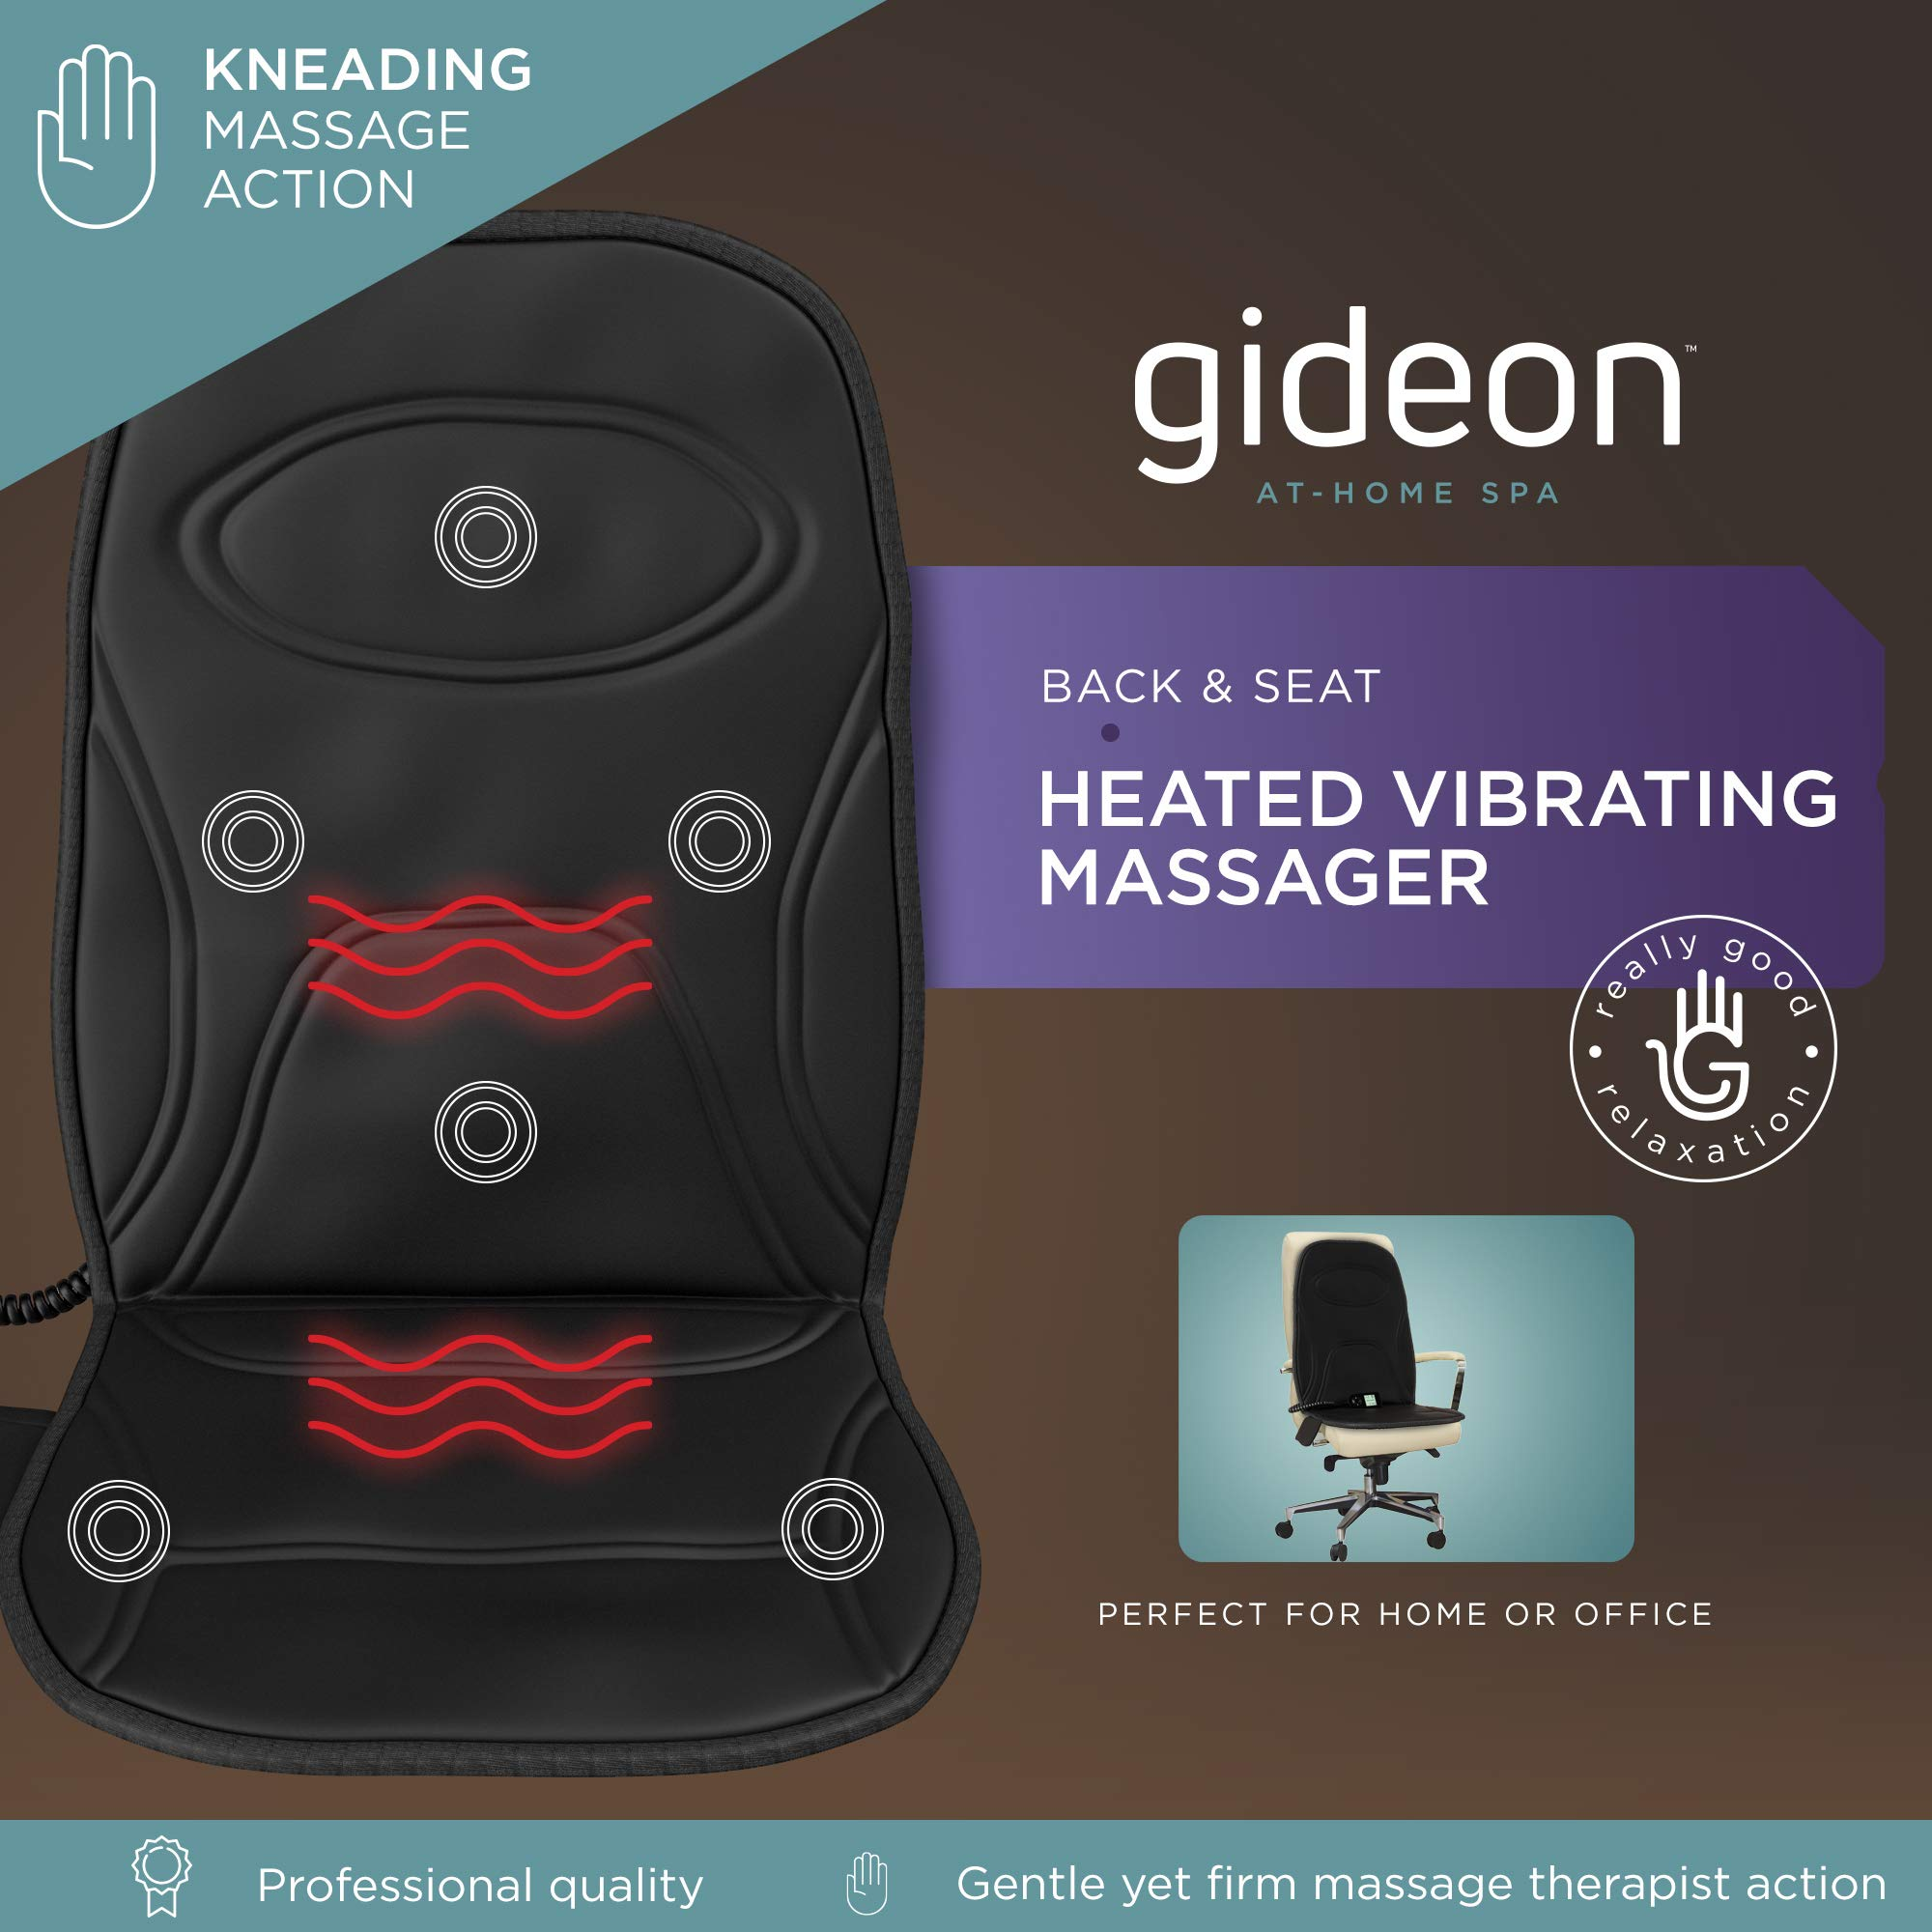 Gideon Powerful Vibrating Massager Seat Cushion for Back, Shoulder and Thighs with Heat Therapy / 8-Massaging Programs - Massage, Relax, Sooth and Relieve Thigh, Shoulder and Back Pain